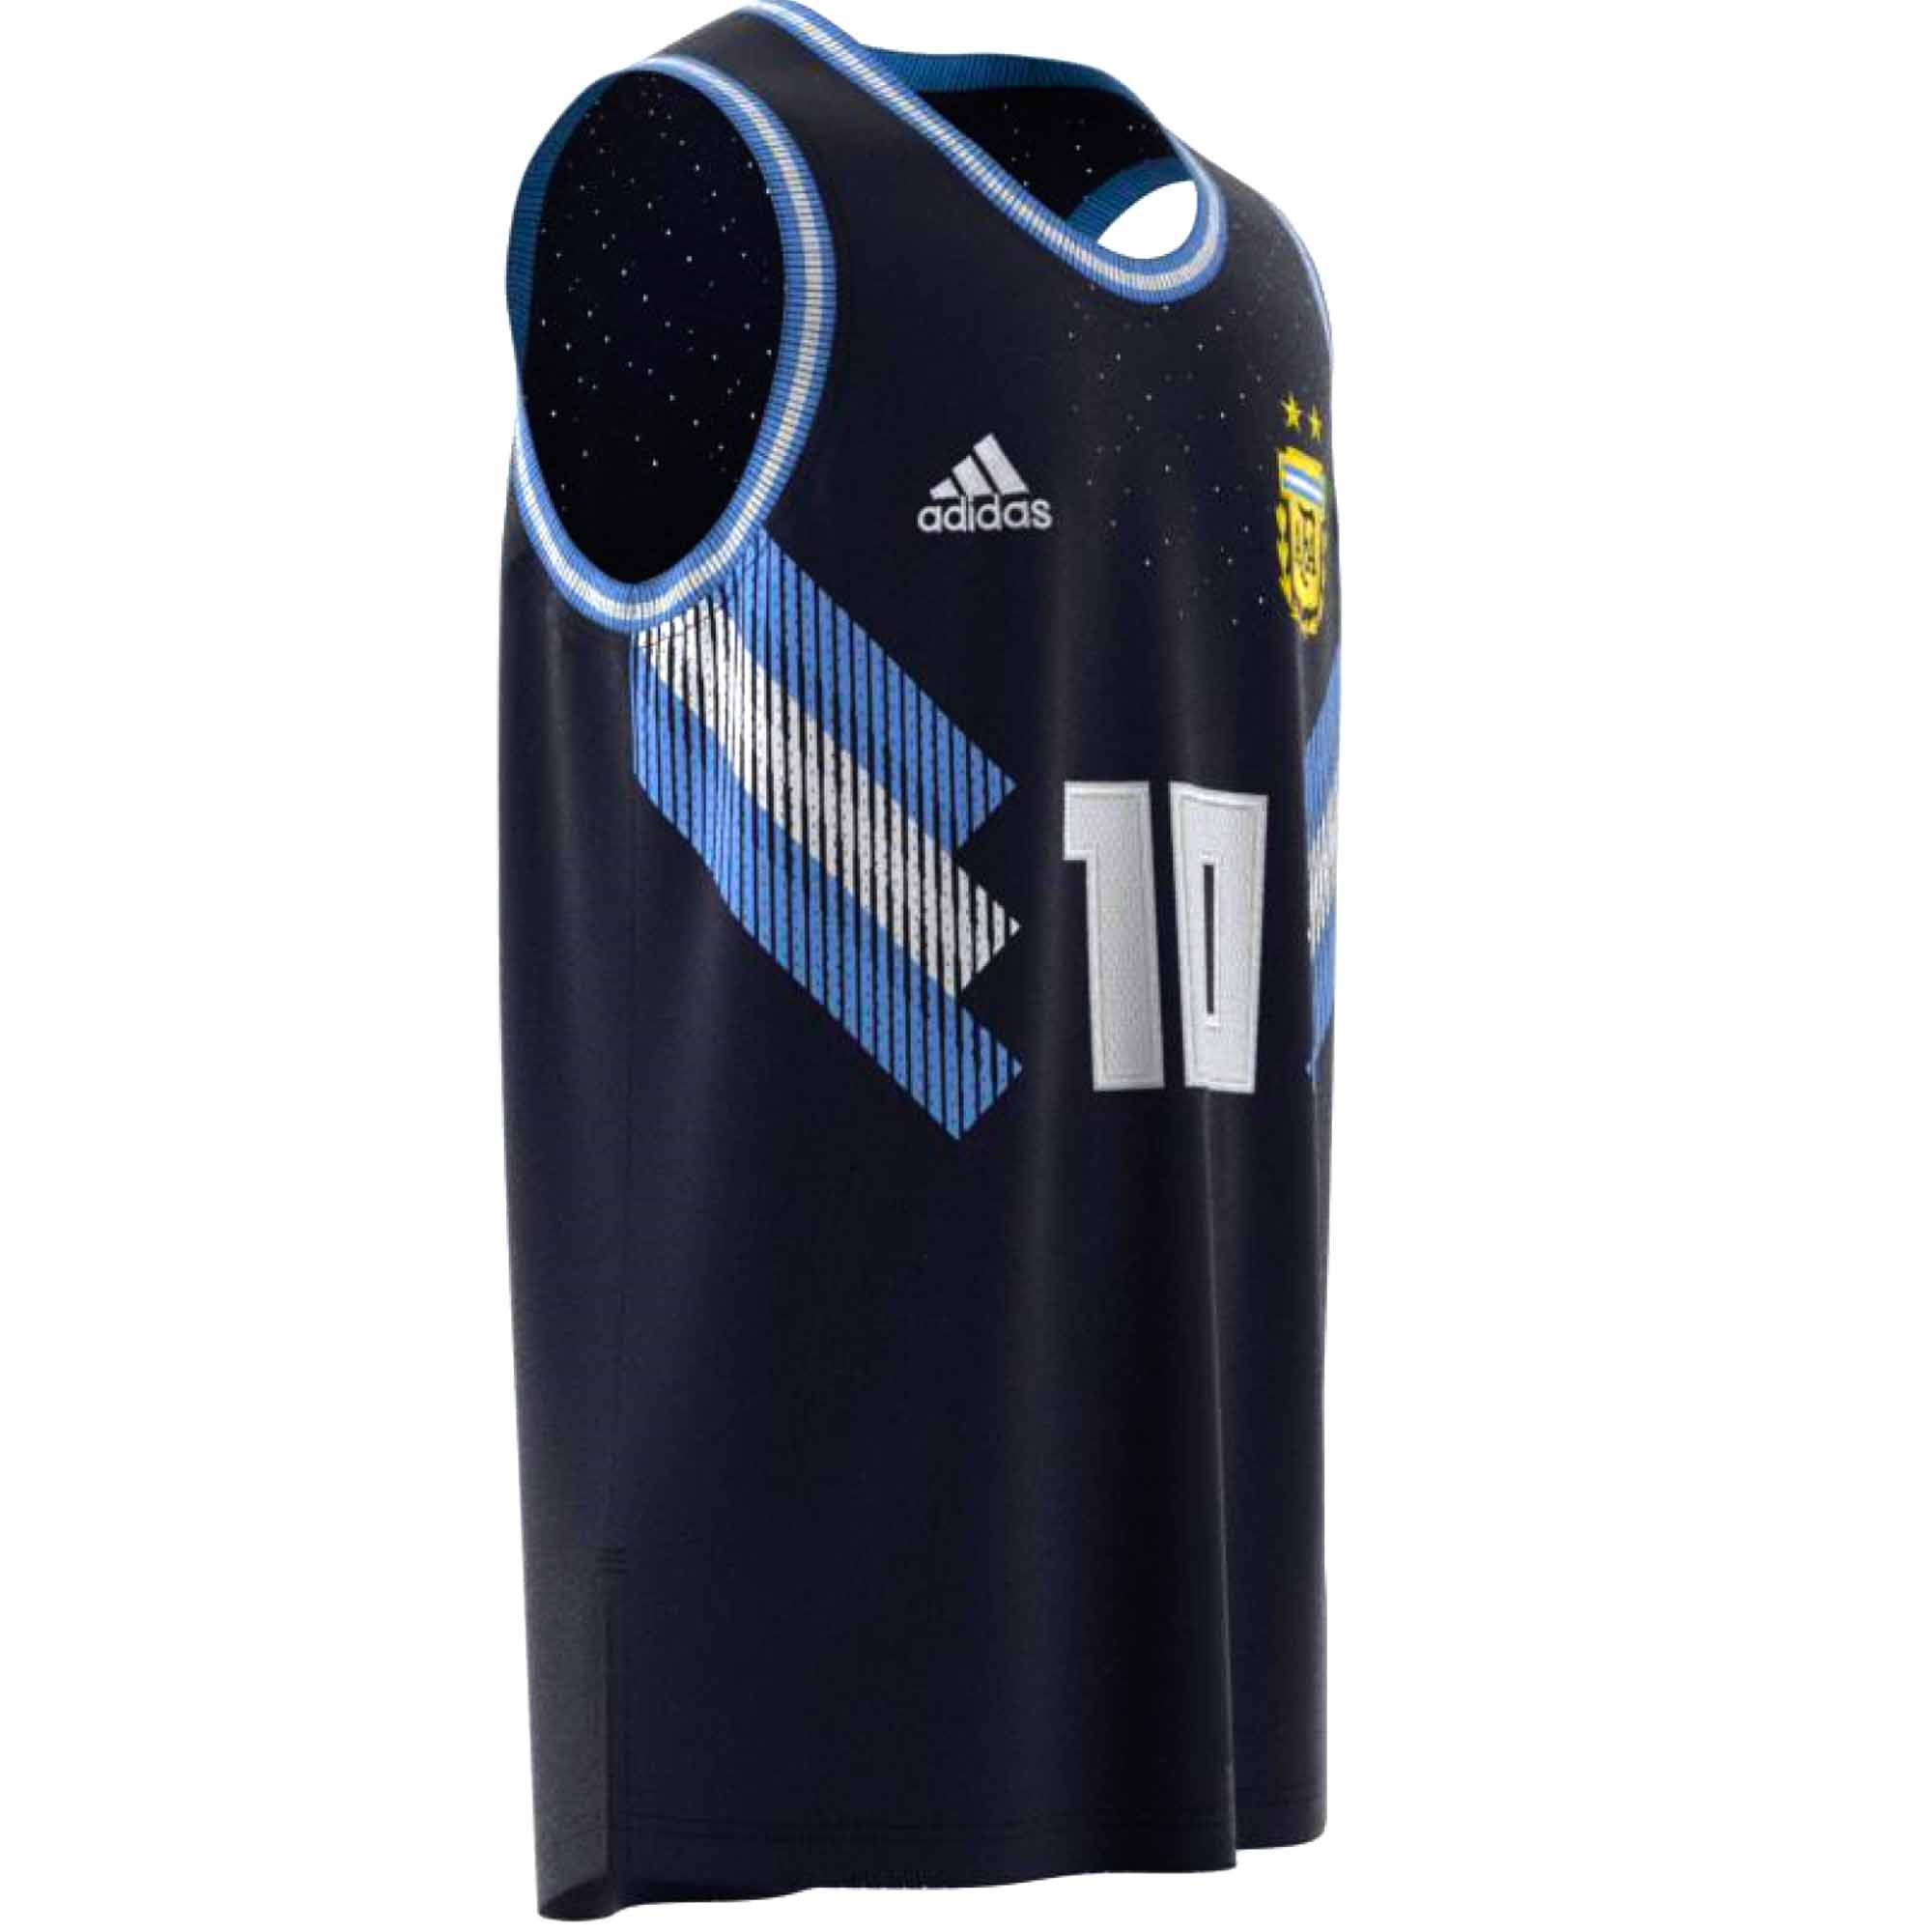 reputable site c022f 762ad adidas Argentina Basketball Jersey 2018-19 - Soccer Master